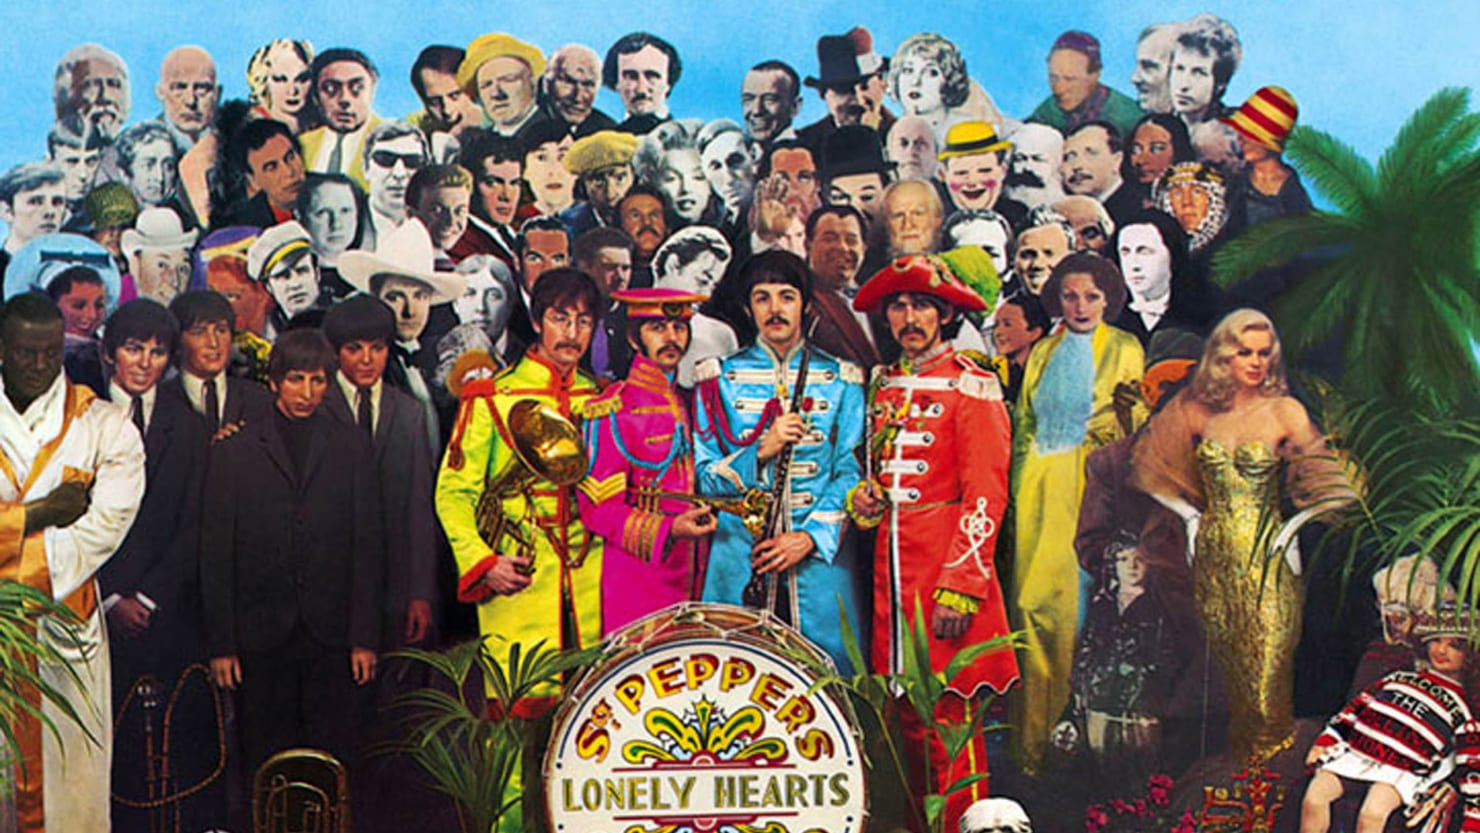 Image result for sgt pepper's lonely hearts club band wallpaper